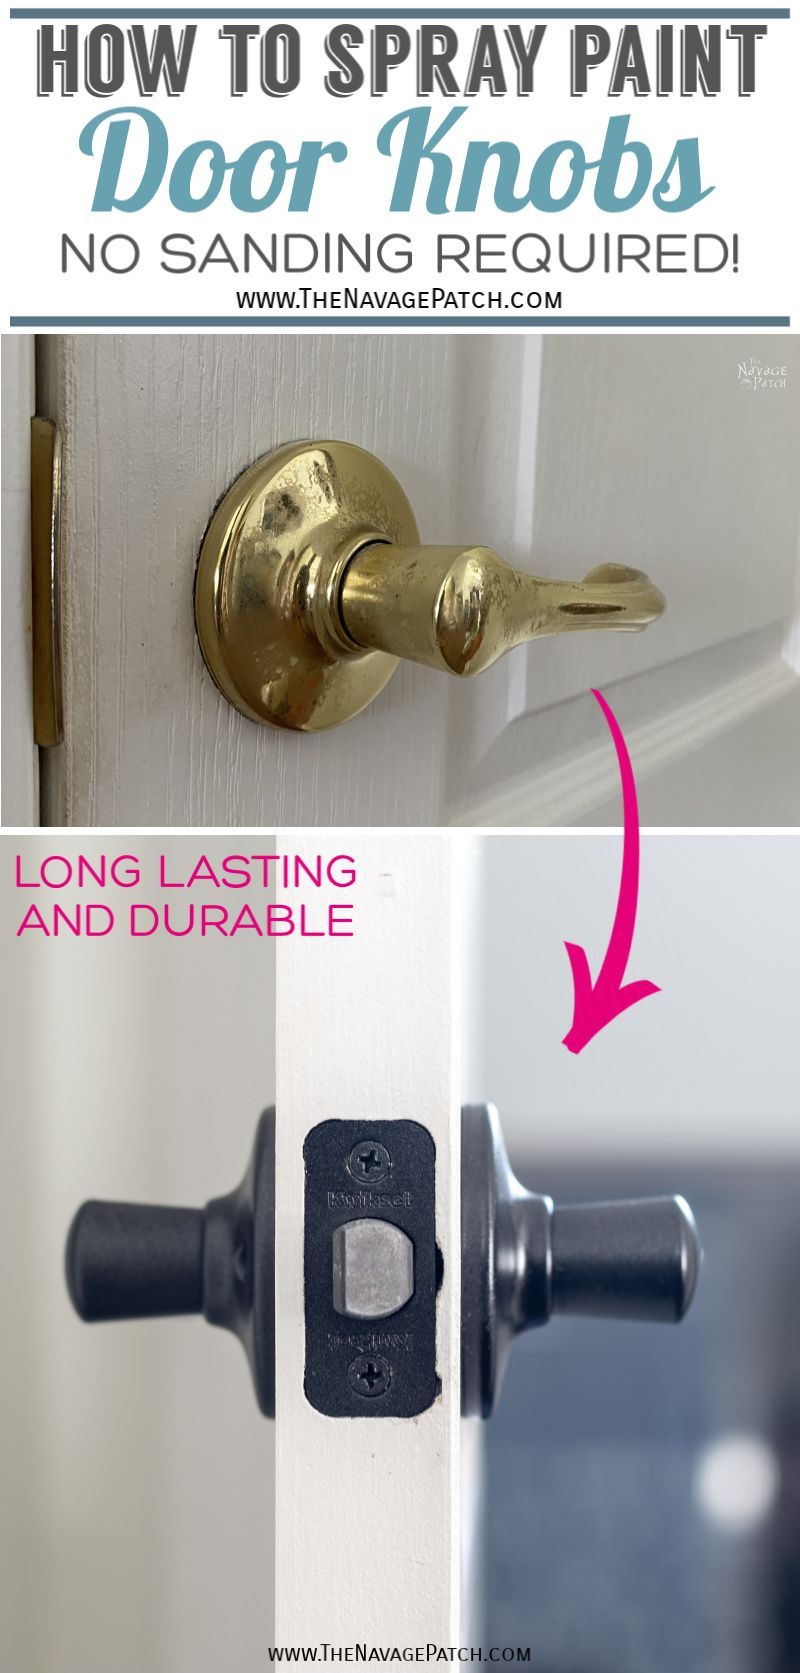 How to Spray Paint Door Knobs Without Sanding - TheNavagePatch.com